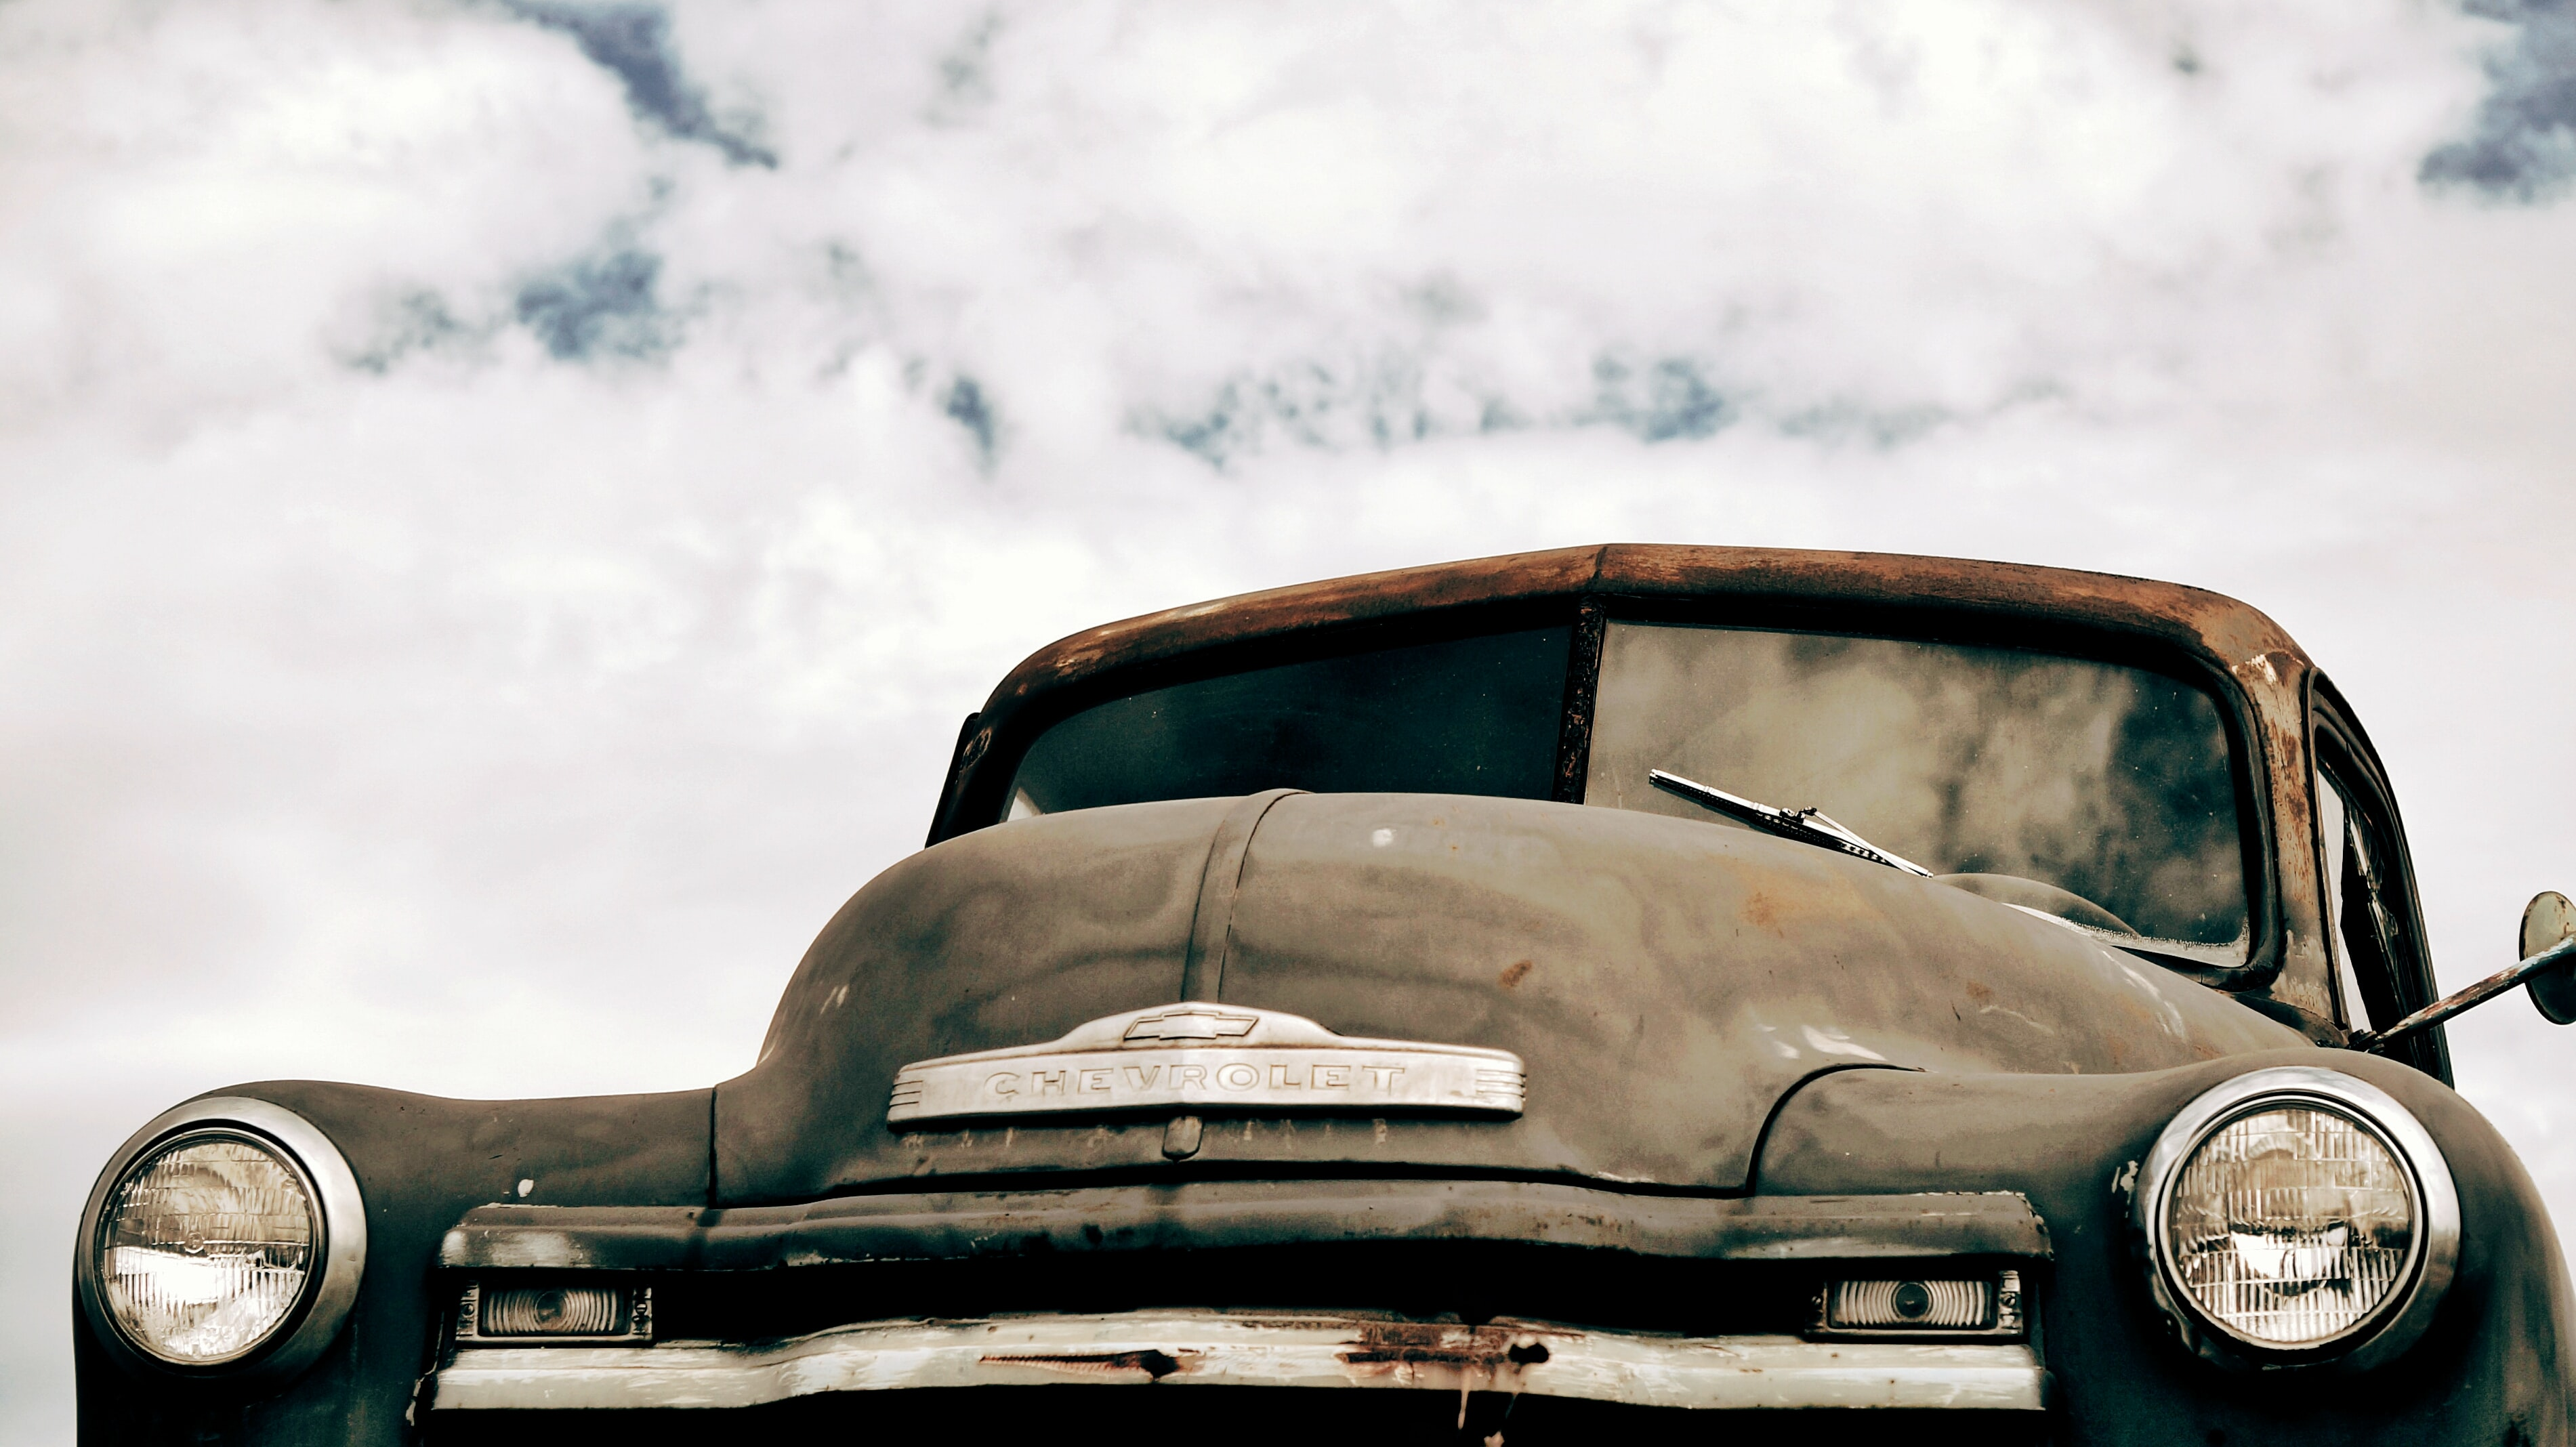 Front view of a rusted vintage car prominently featuring the hood.